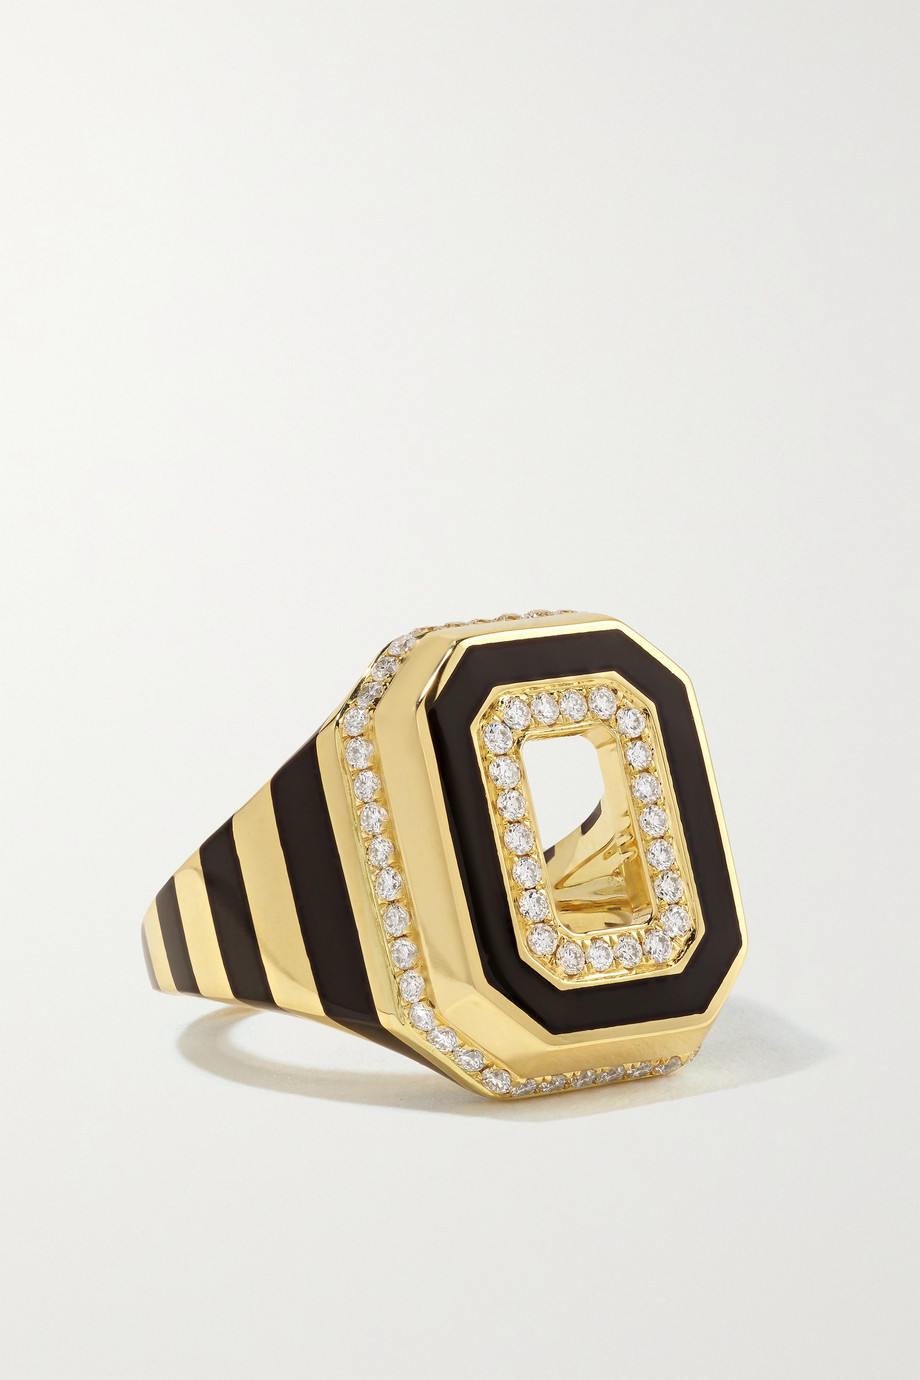 STATE PROPERTY Azar 18-karat gold, enamel and diamond signet ring